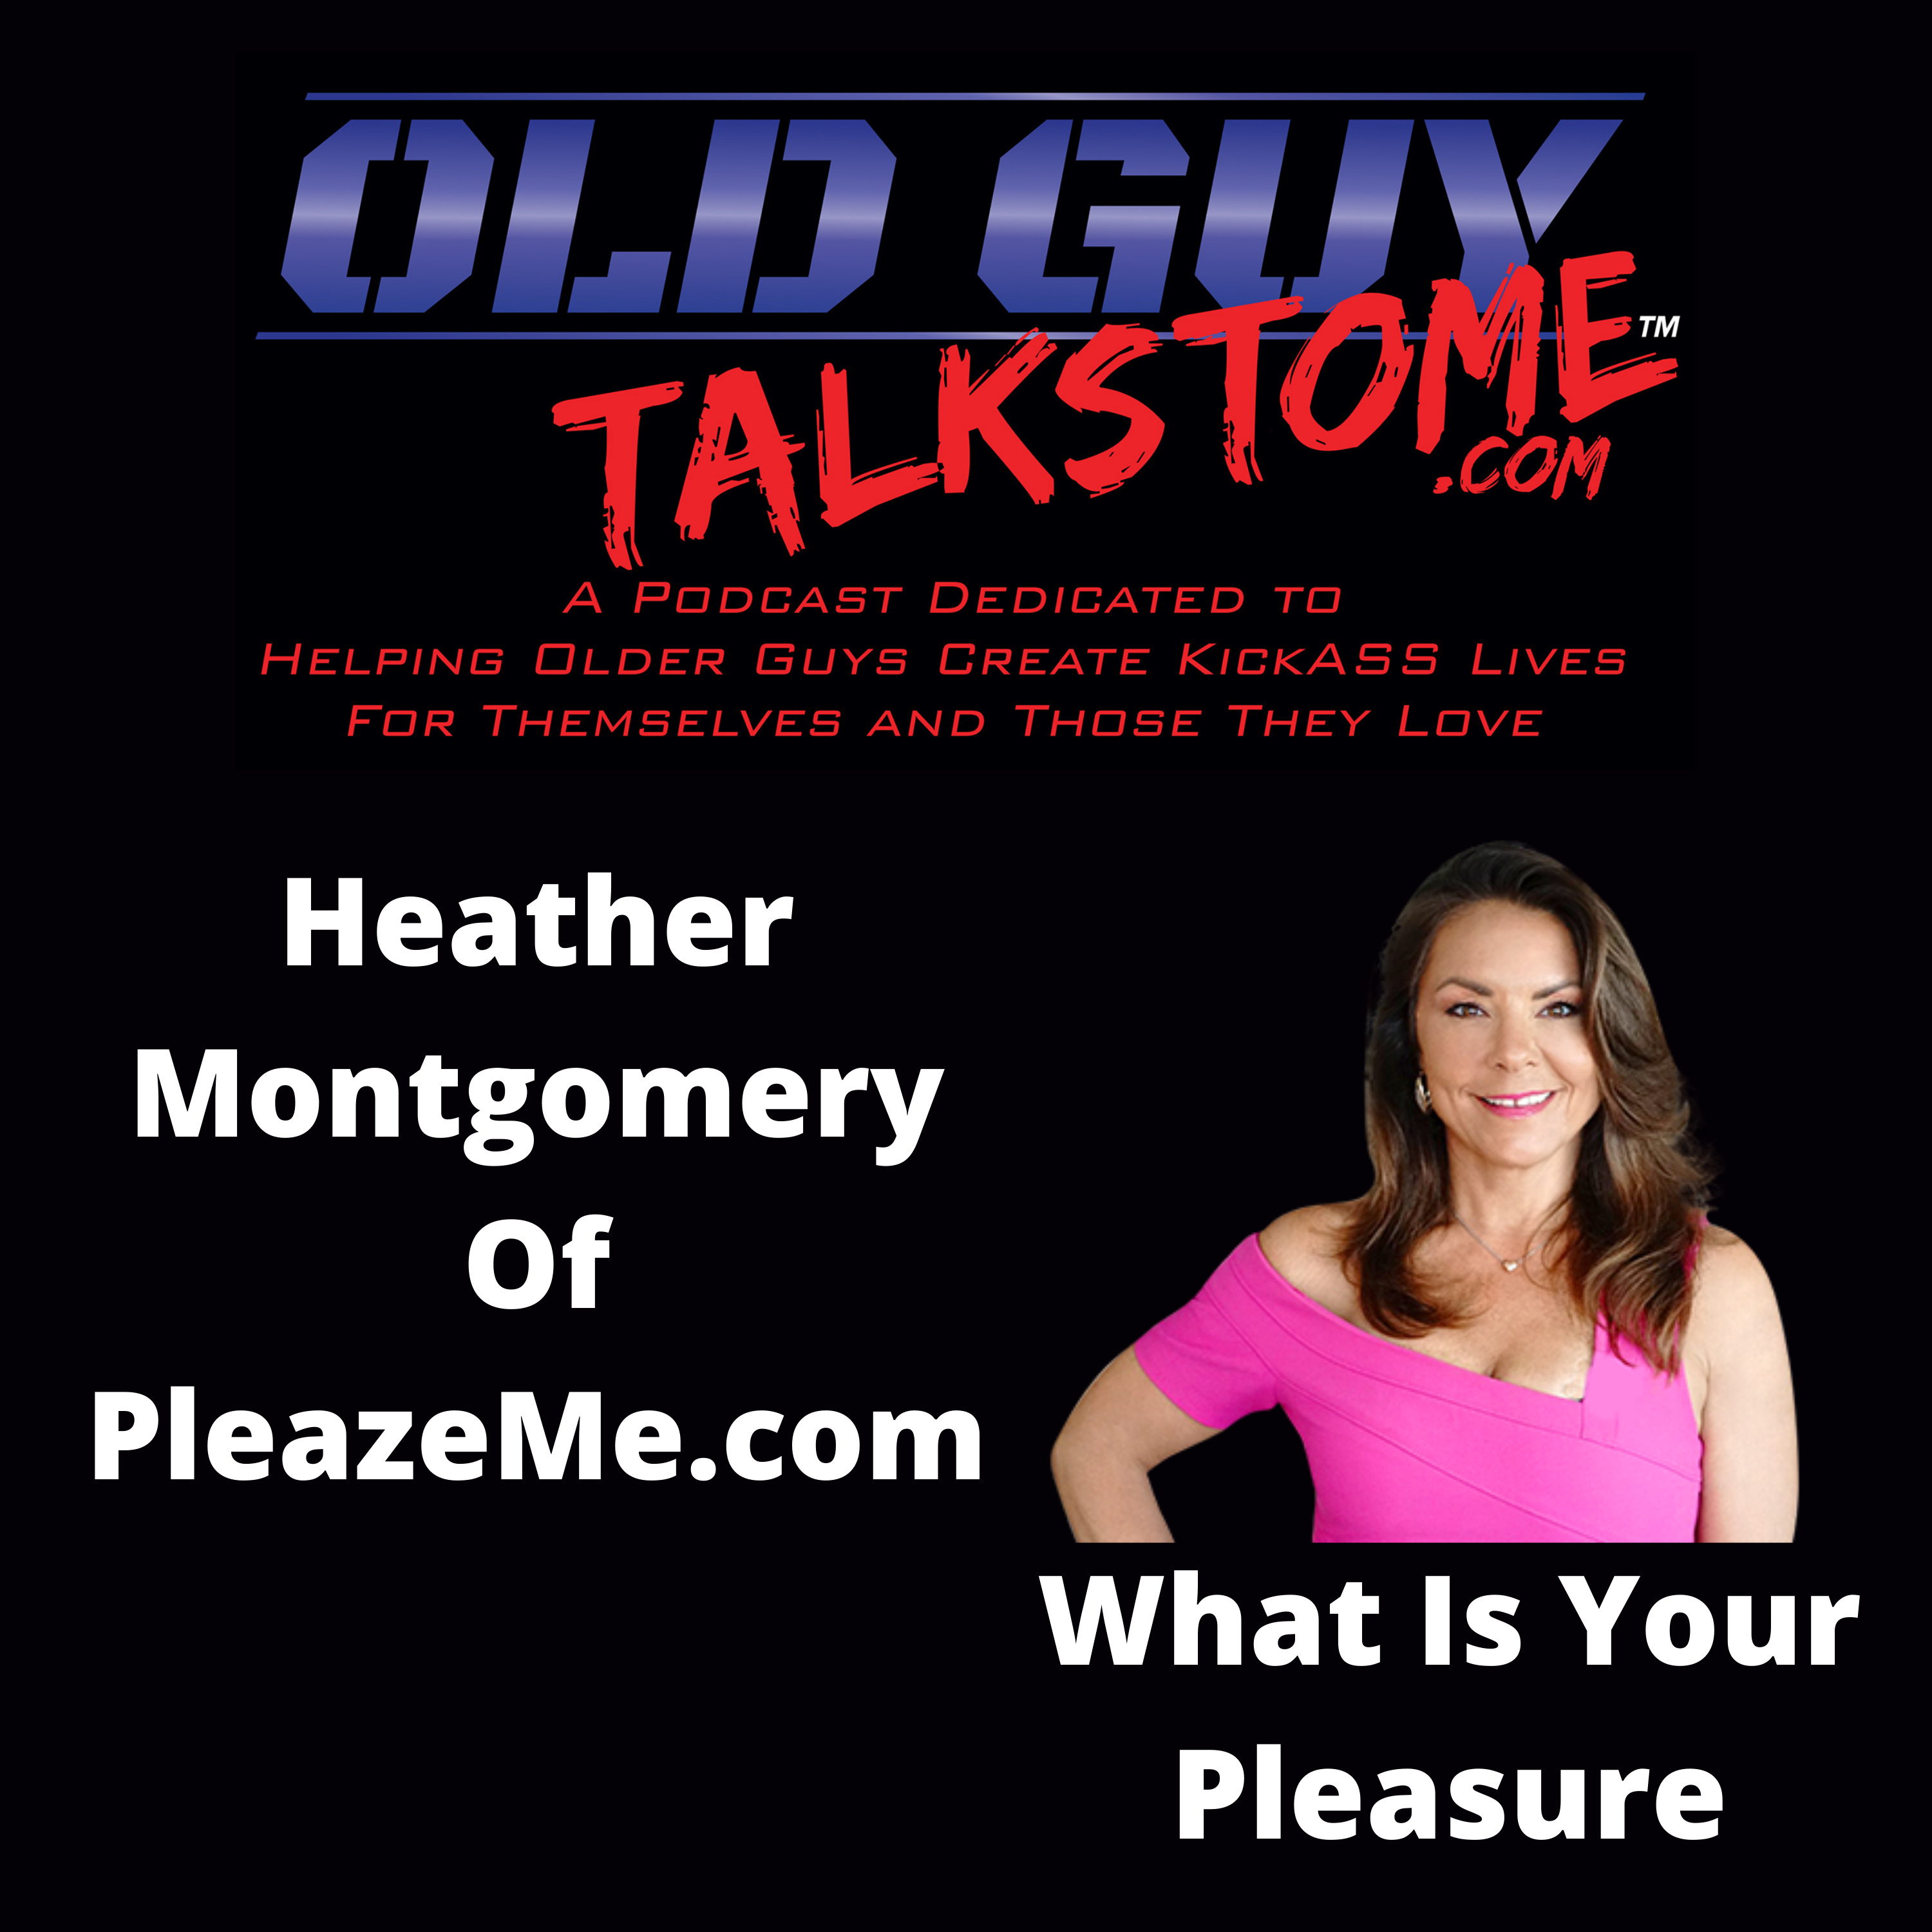 OldGuyTalksToMe - What Is Your Pleasure???